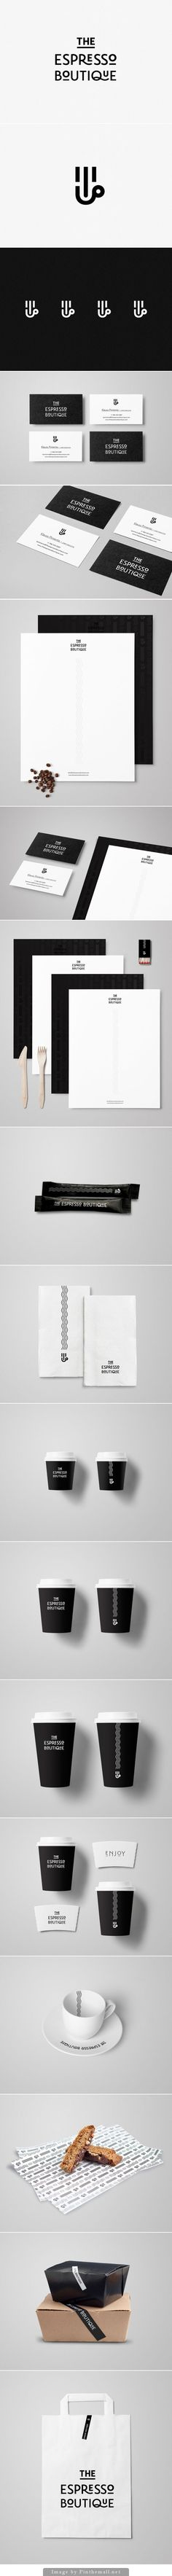 Great stationary design including logo, letter head, business card, envelope and product design. #design